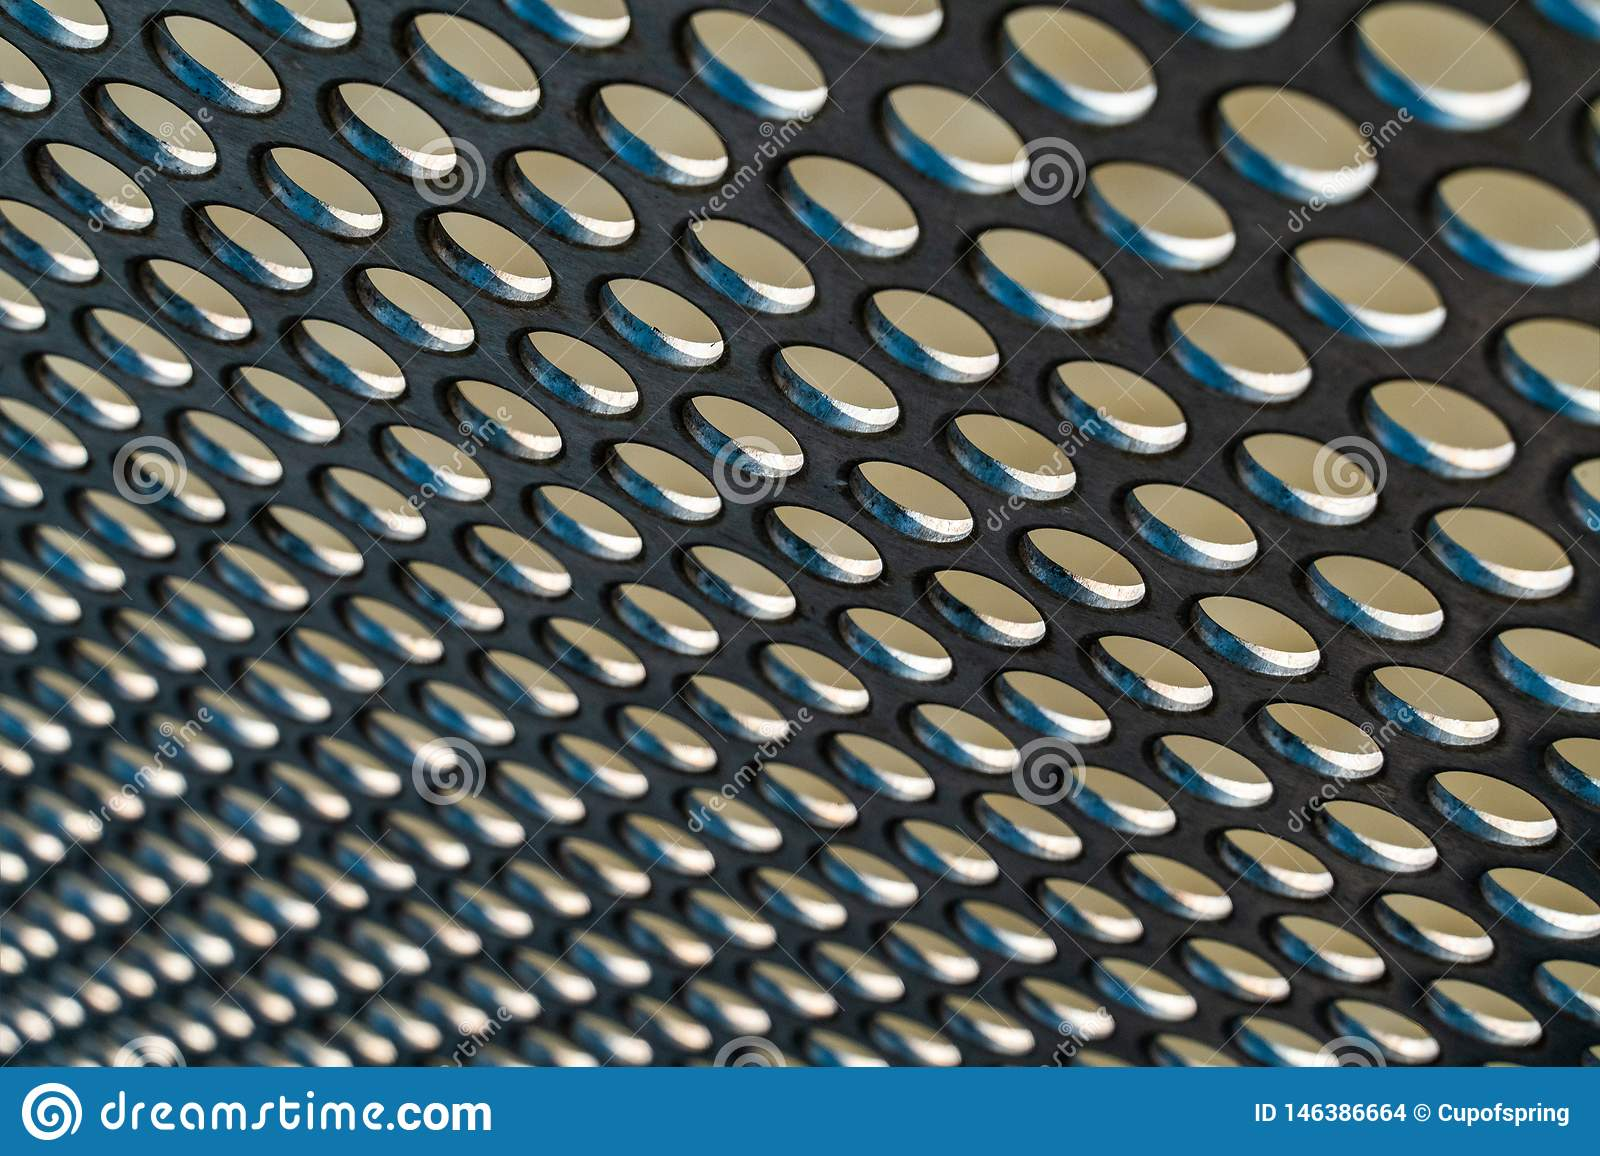 Metal hole mesh pattern with with shallow depth of focus background